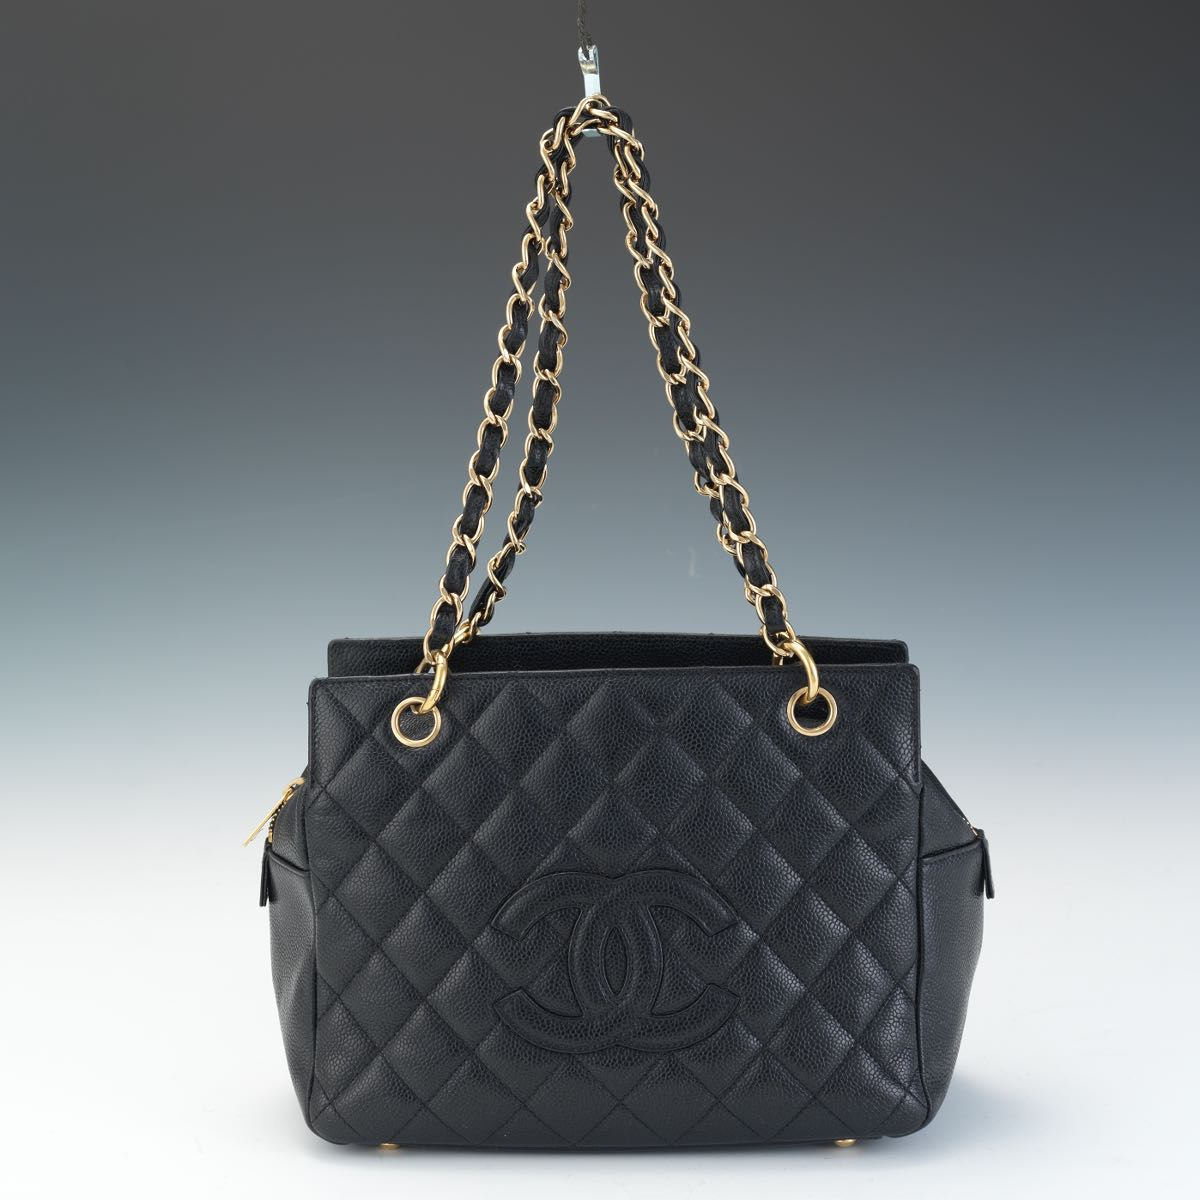 28a0a3002b9a Chanel Petite Timeless Shopping Tote in Black Caviar Leather